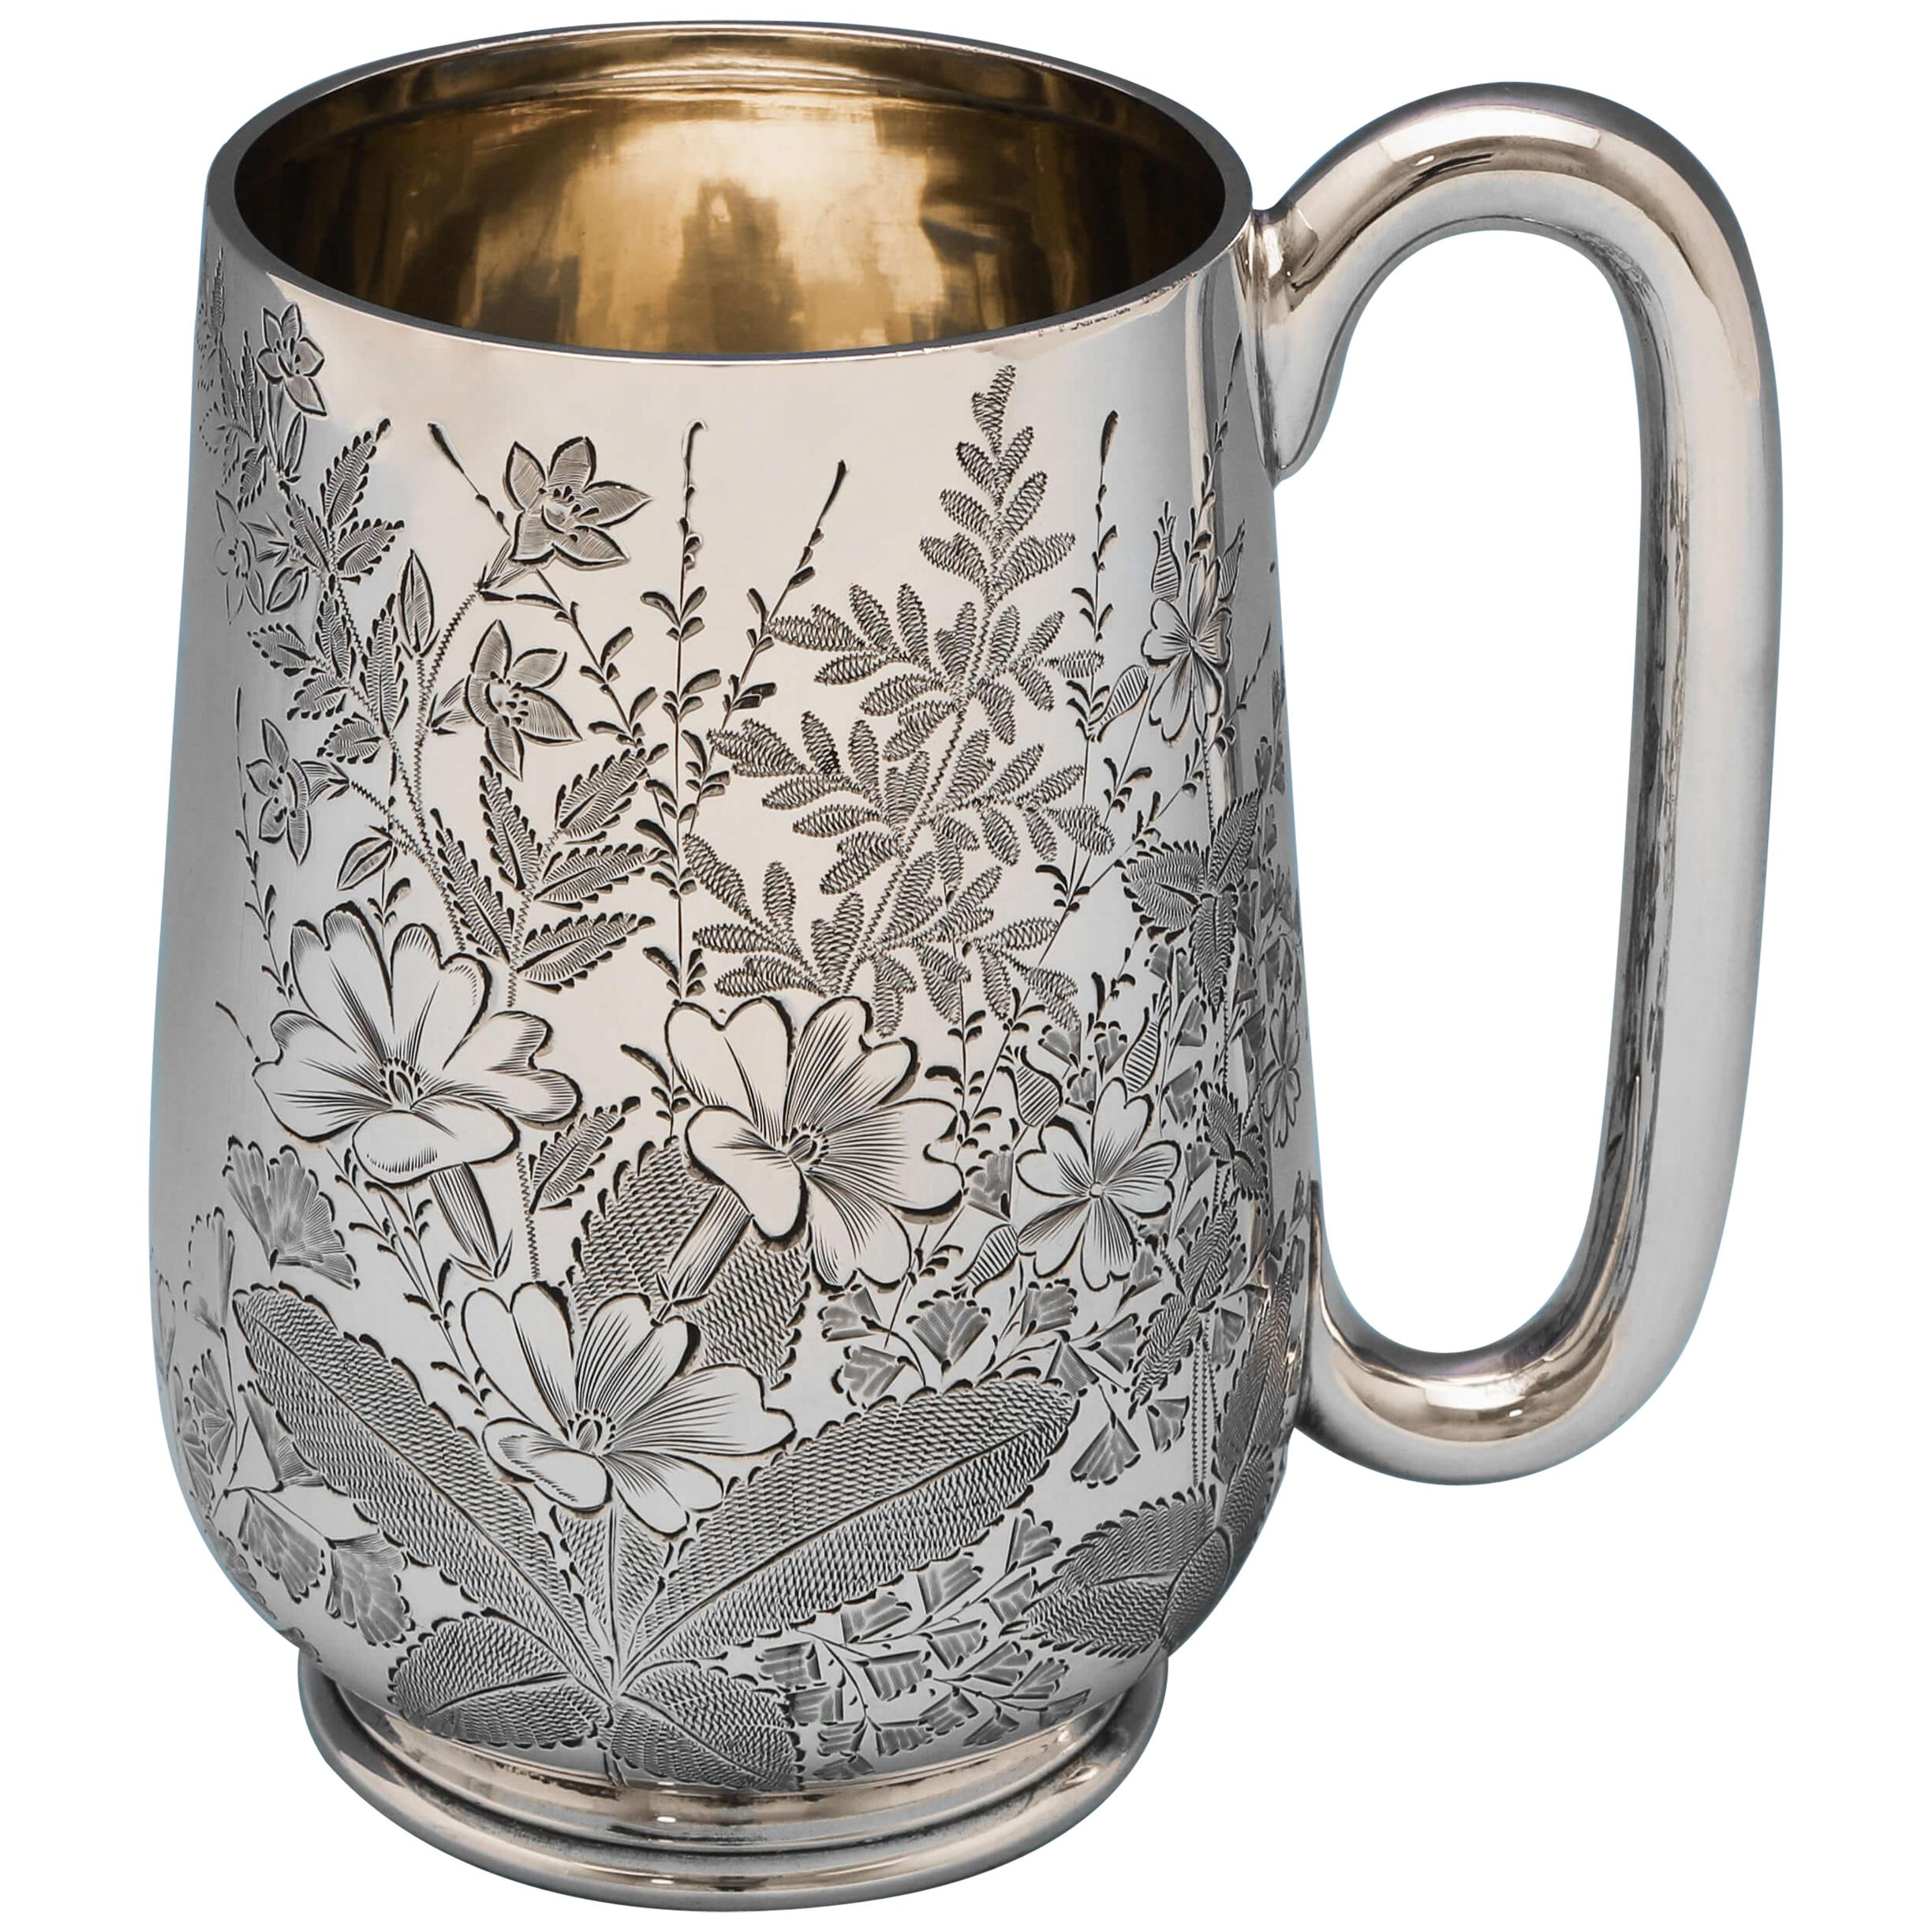 Antique Victorian Sterling Silver Mug with Floral Engraving, Hallmarked in 1885